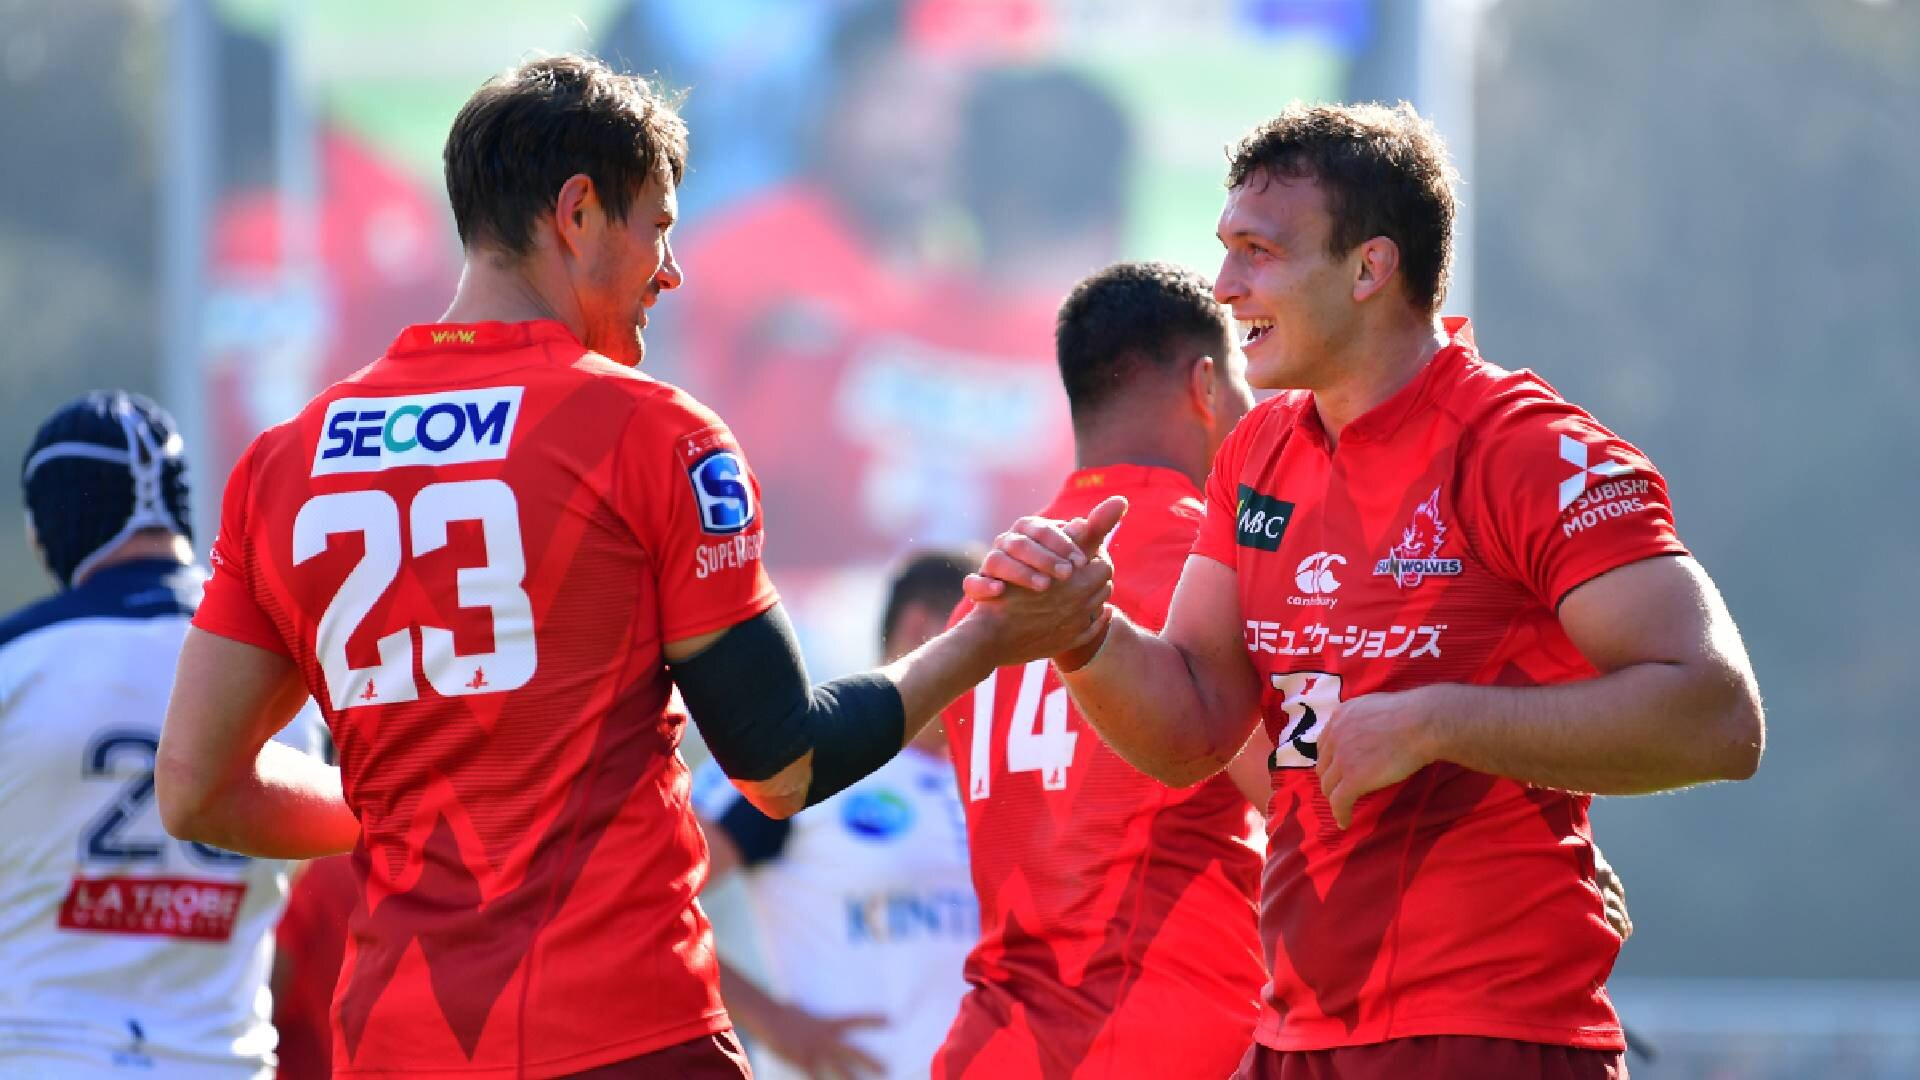 'We'd like to leave a legacy': Sunwolves respond to Rugby Australia's proposed domestic competition